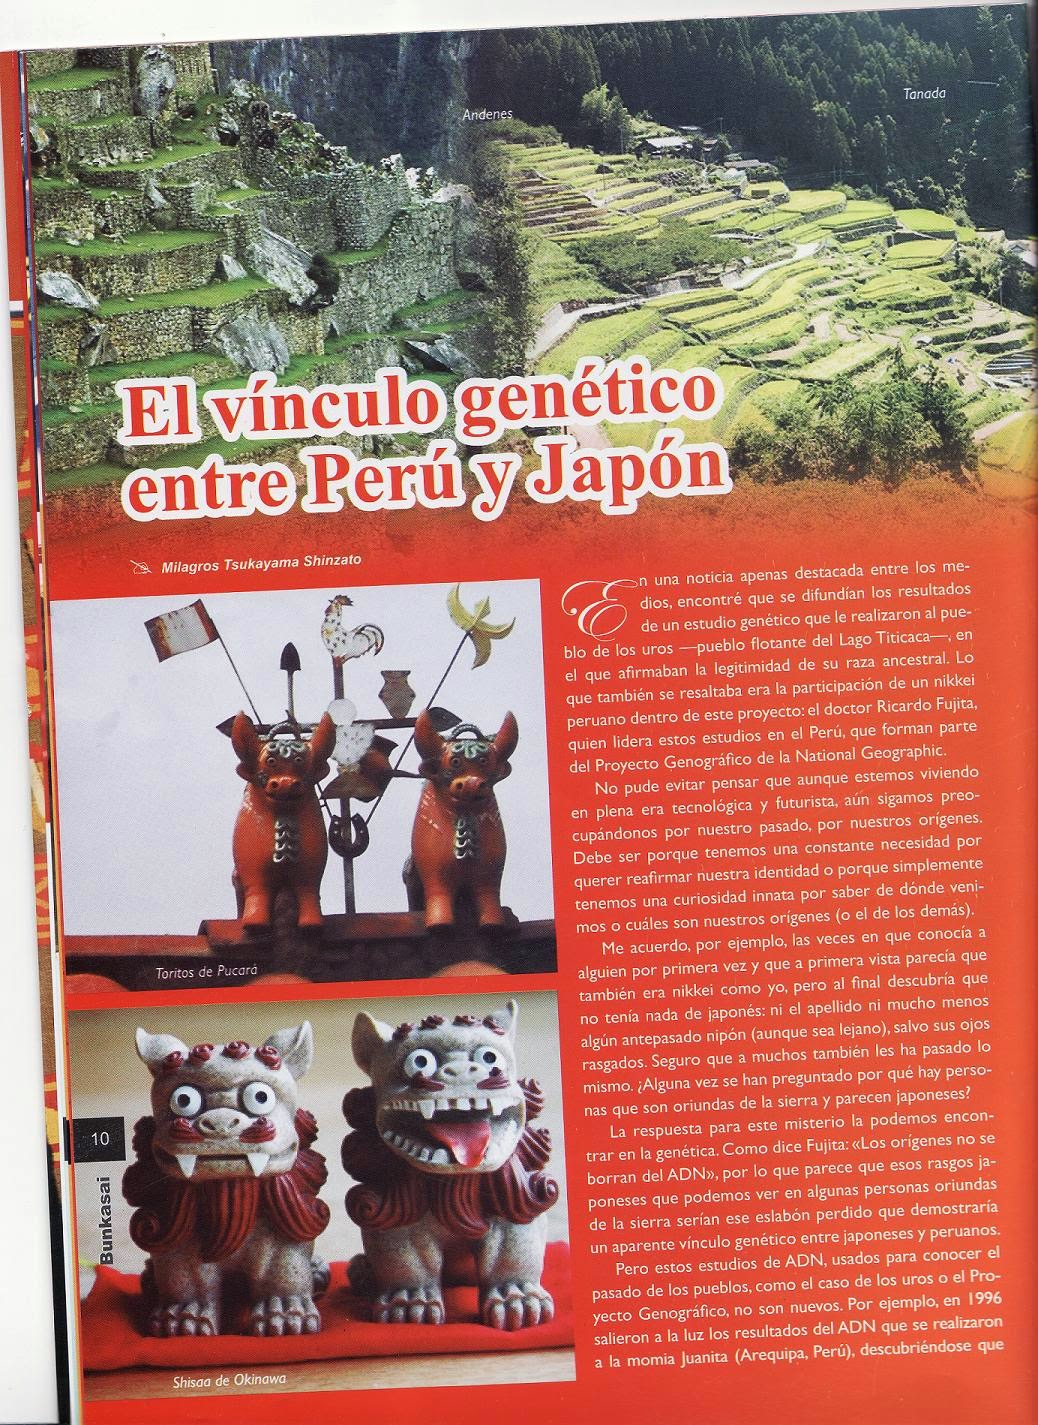 REVISTA BUNKASAI (Publicado por el Diario Peru Shimpo, edición de marzo del 2014)